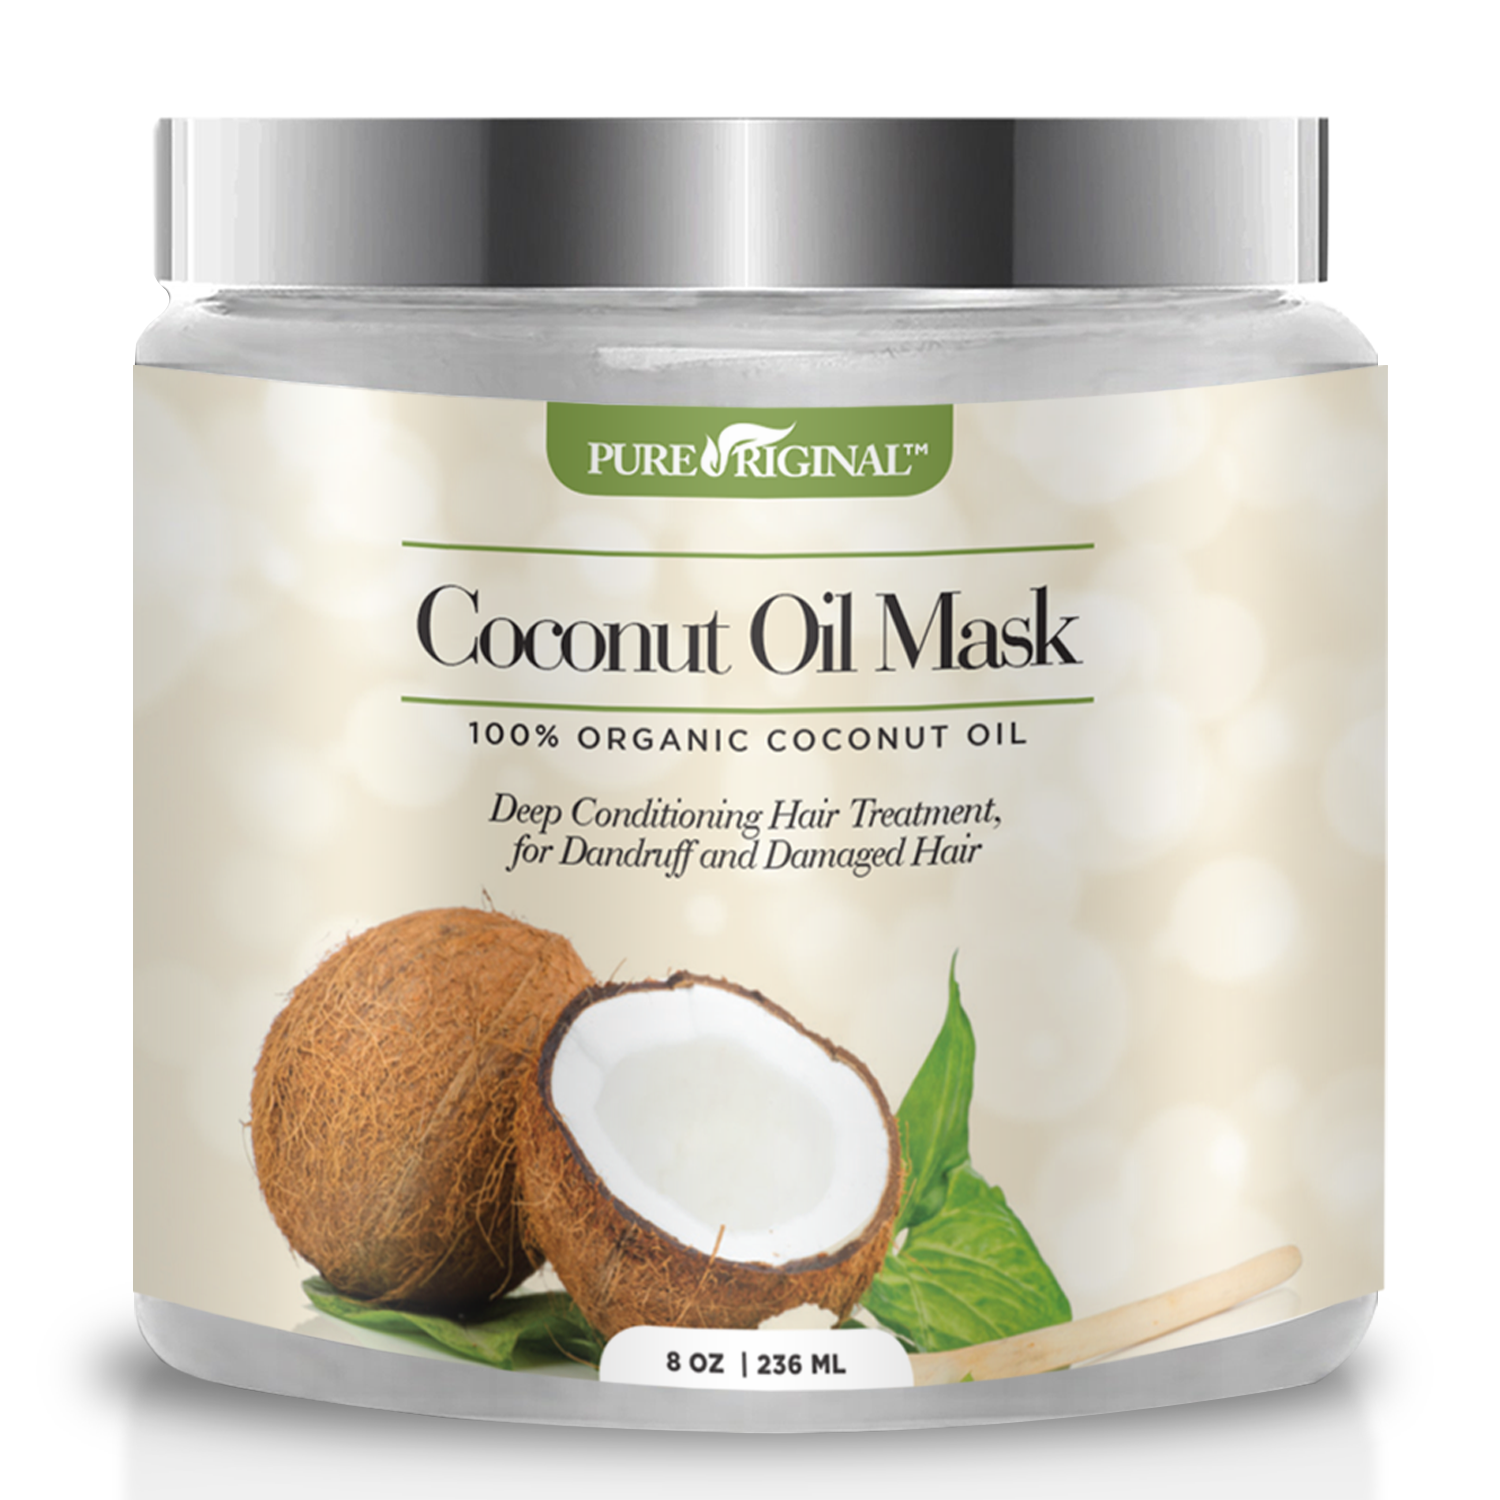 Coconut Oil Mask